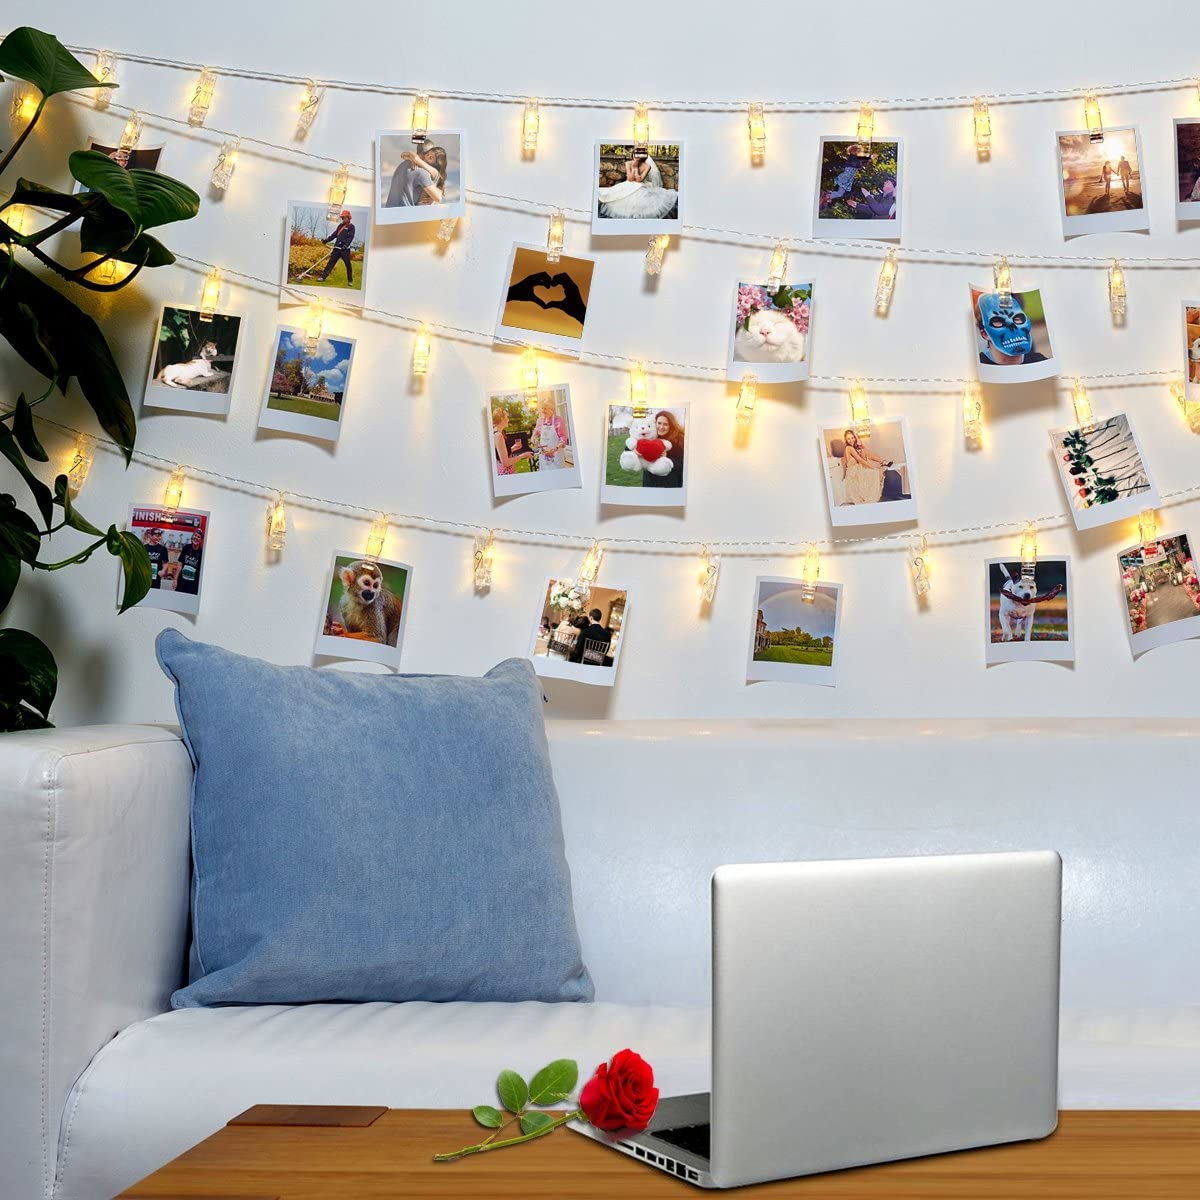 Jokmae 40 LED Photo Clips String Lights – 8 Modes Wall Hanging Clothespin Picture Display Peg Card Holder, Birthday Mothers Day Proposal Wedding Party Decorations Gifts, Girls School Dorm Room Décor